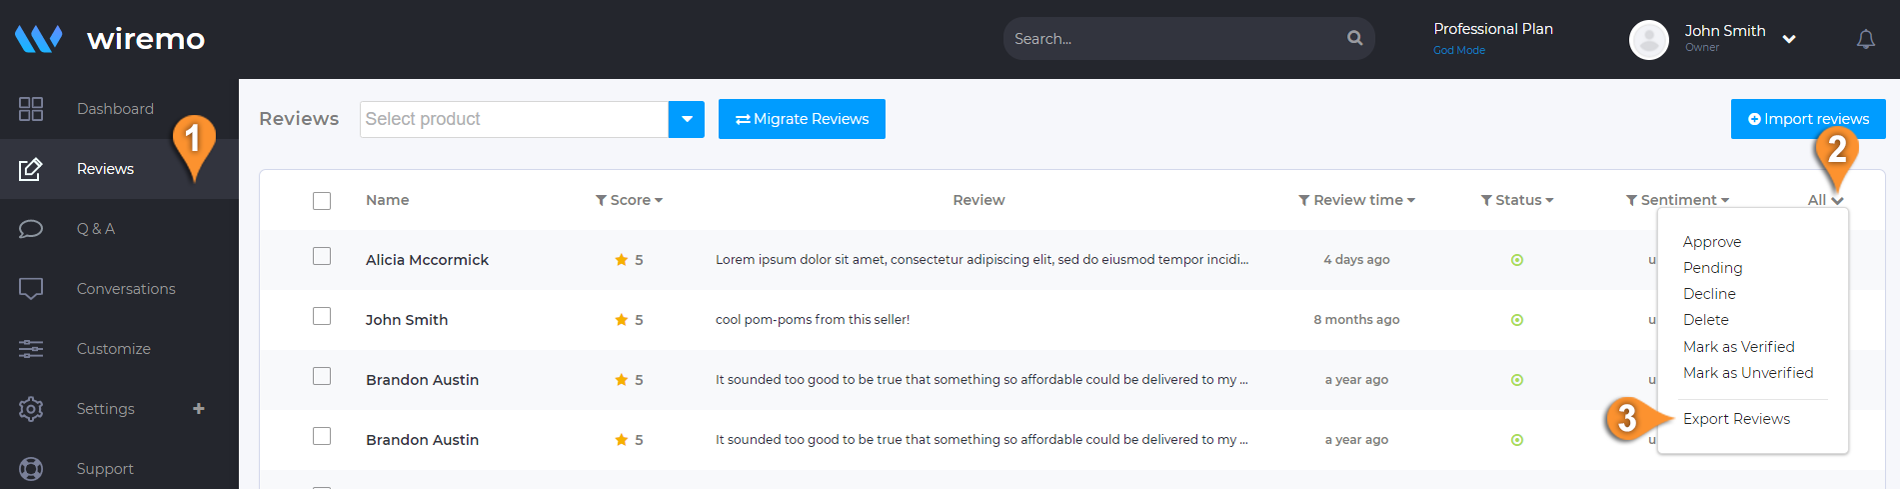 How to Export Reviews From Wiremo